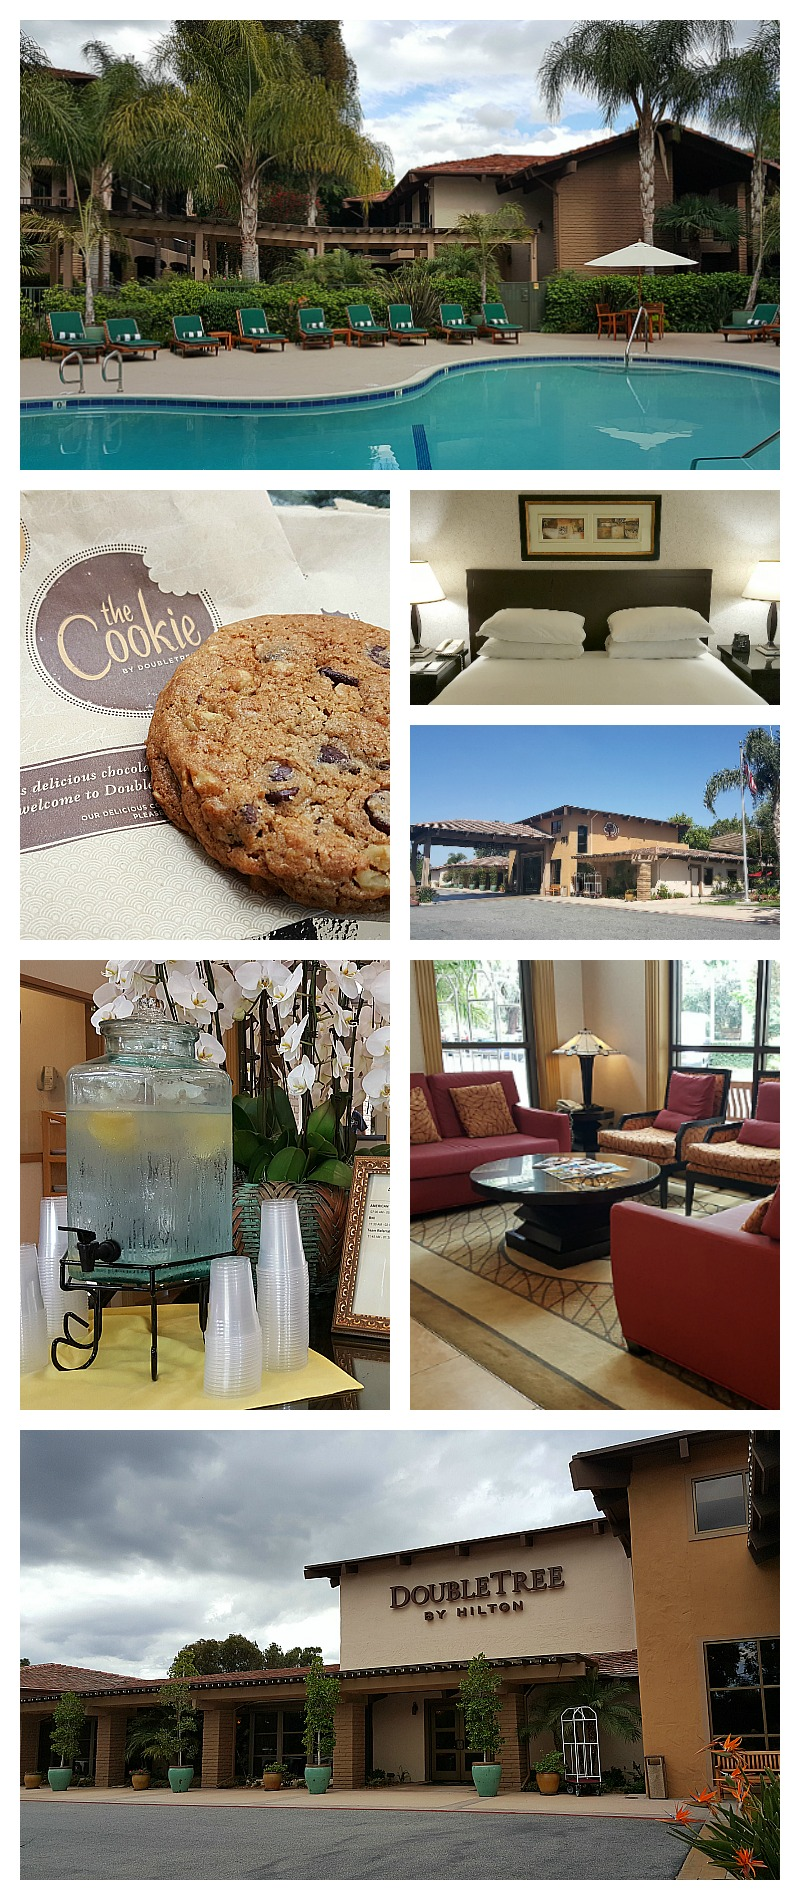 ... Patio Place Santa Ana By The Doubletree By Hilton Claremont Hotel  Valerie Was Here ...